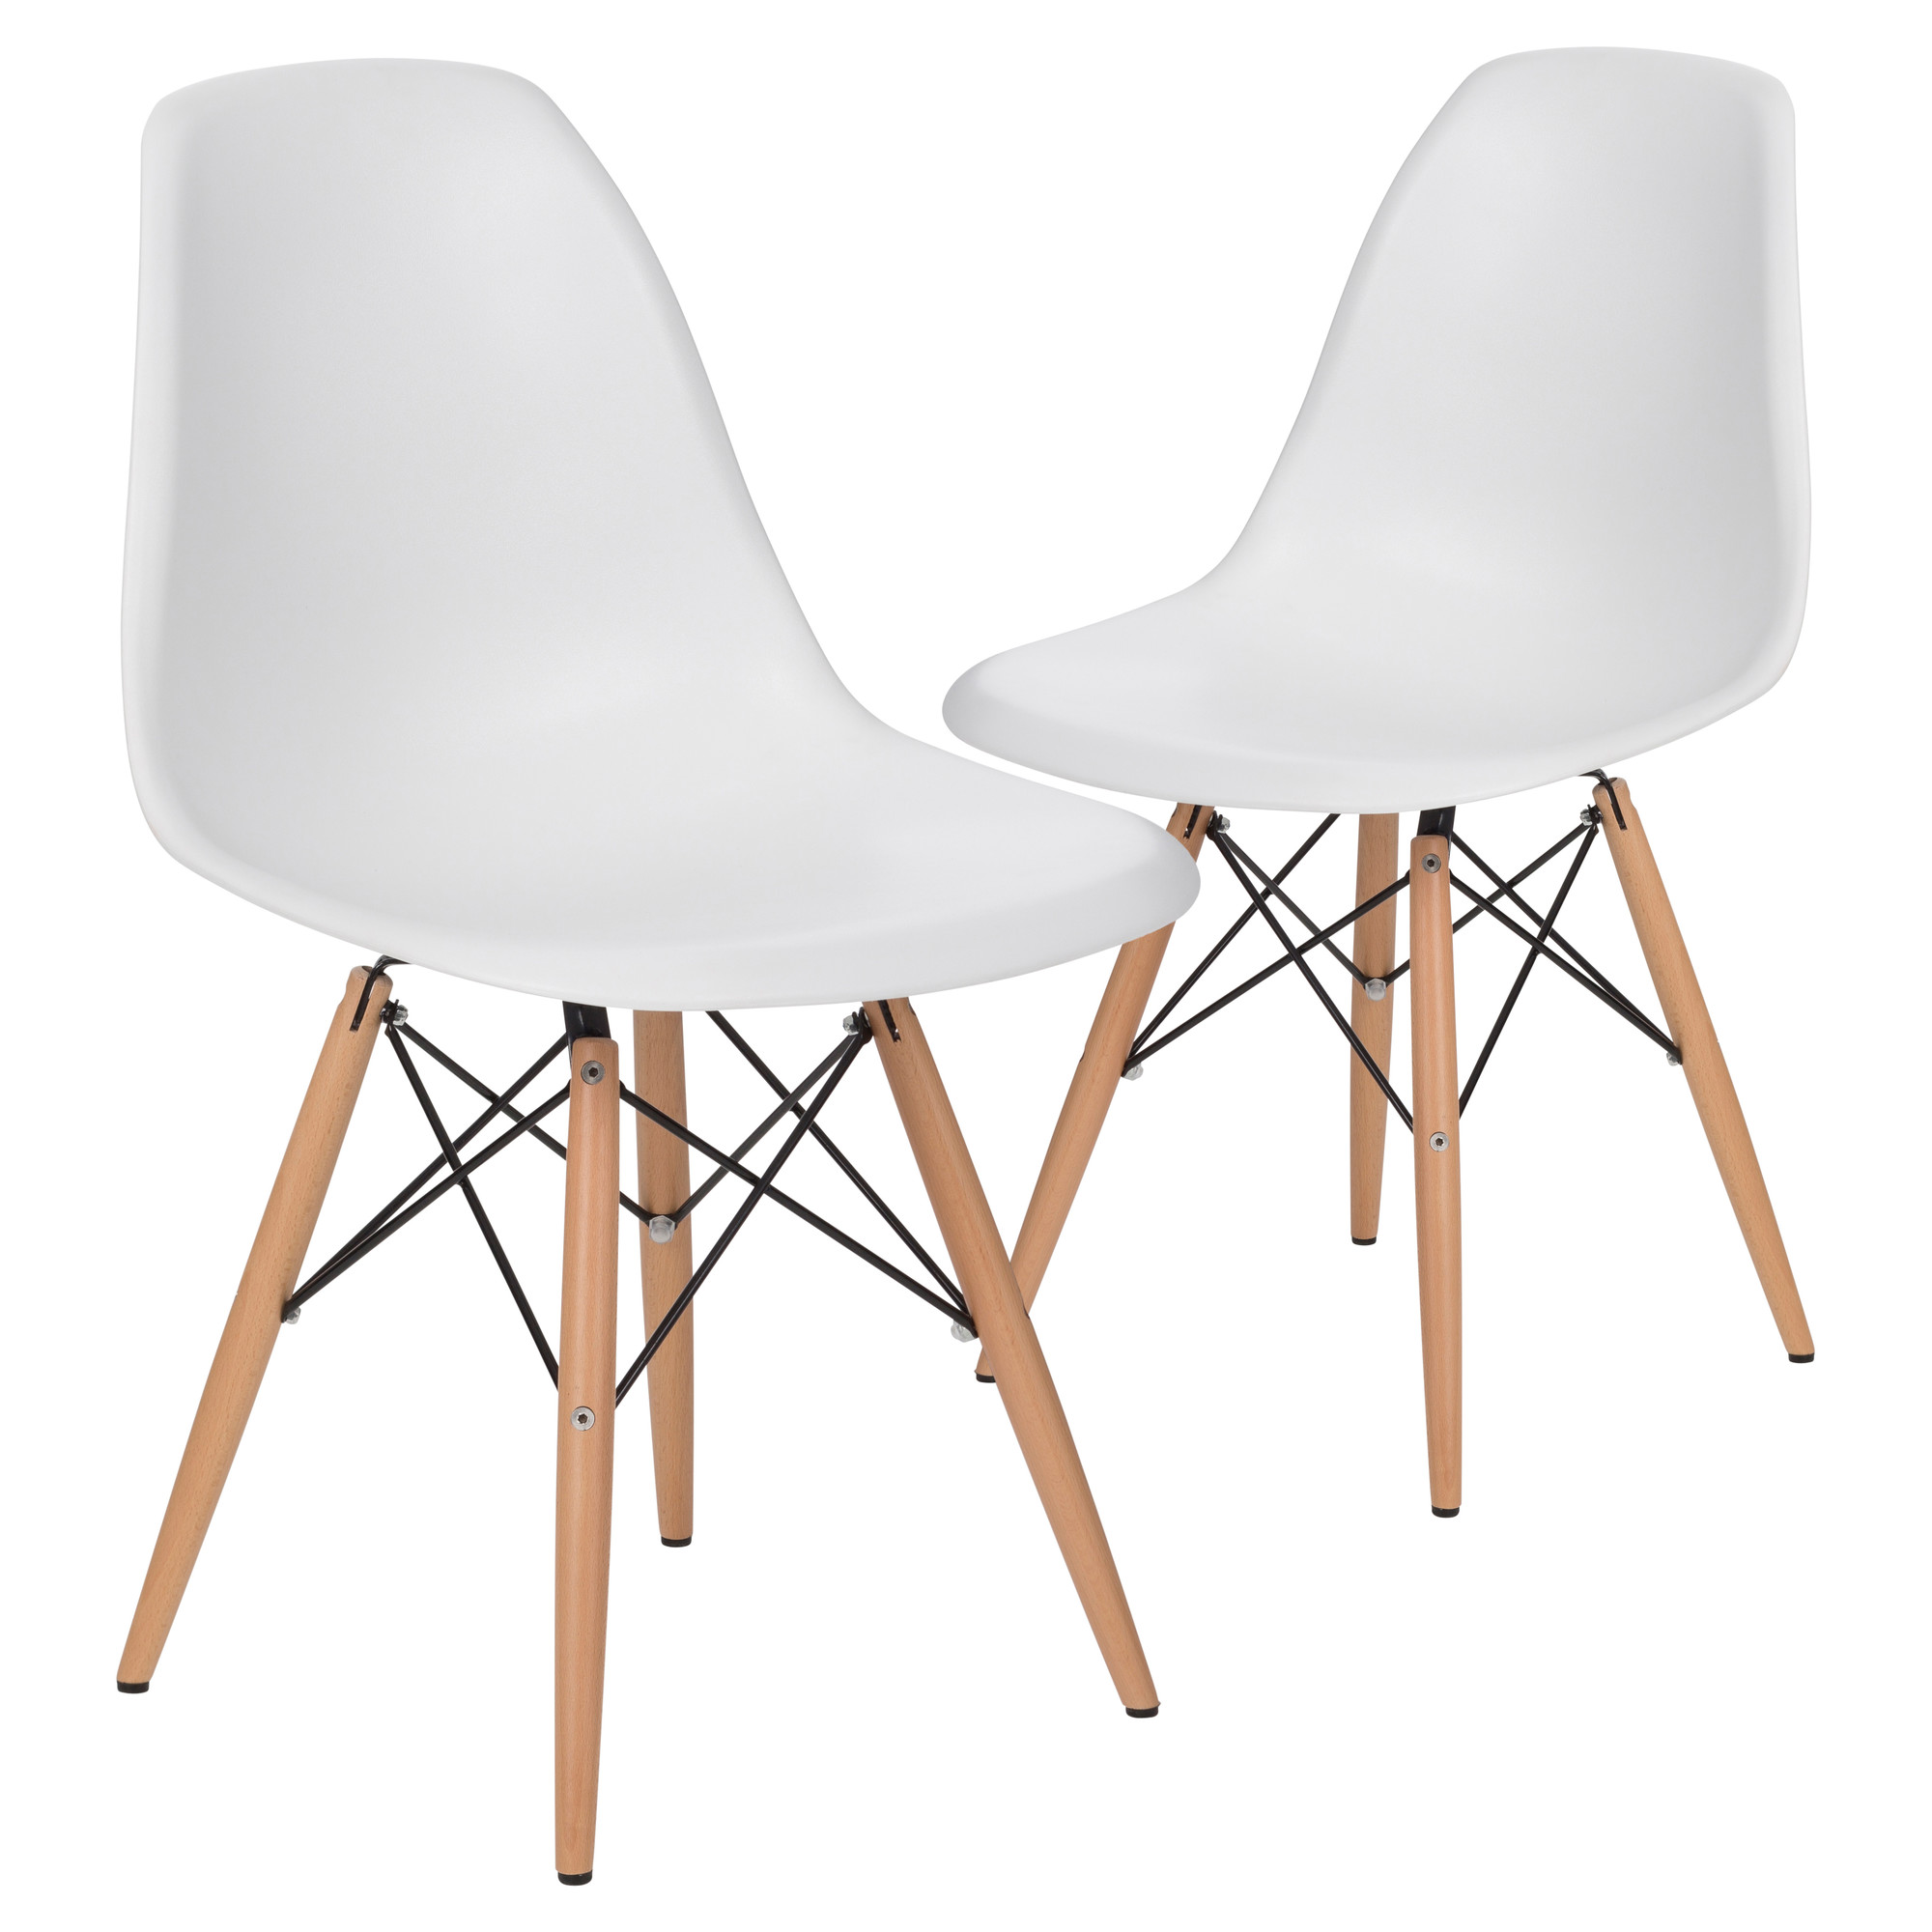 New eames replica dsw dining side chair ebay for Eames replica